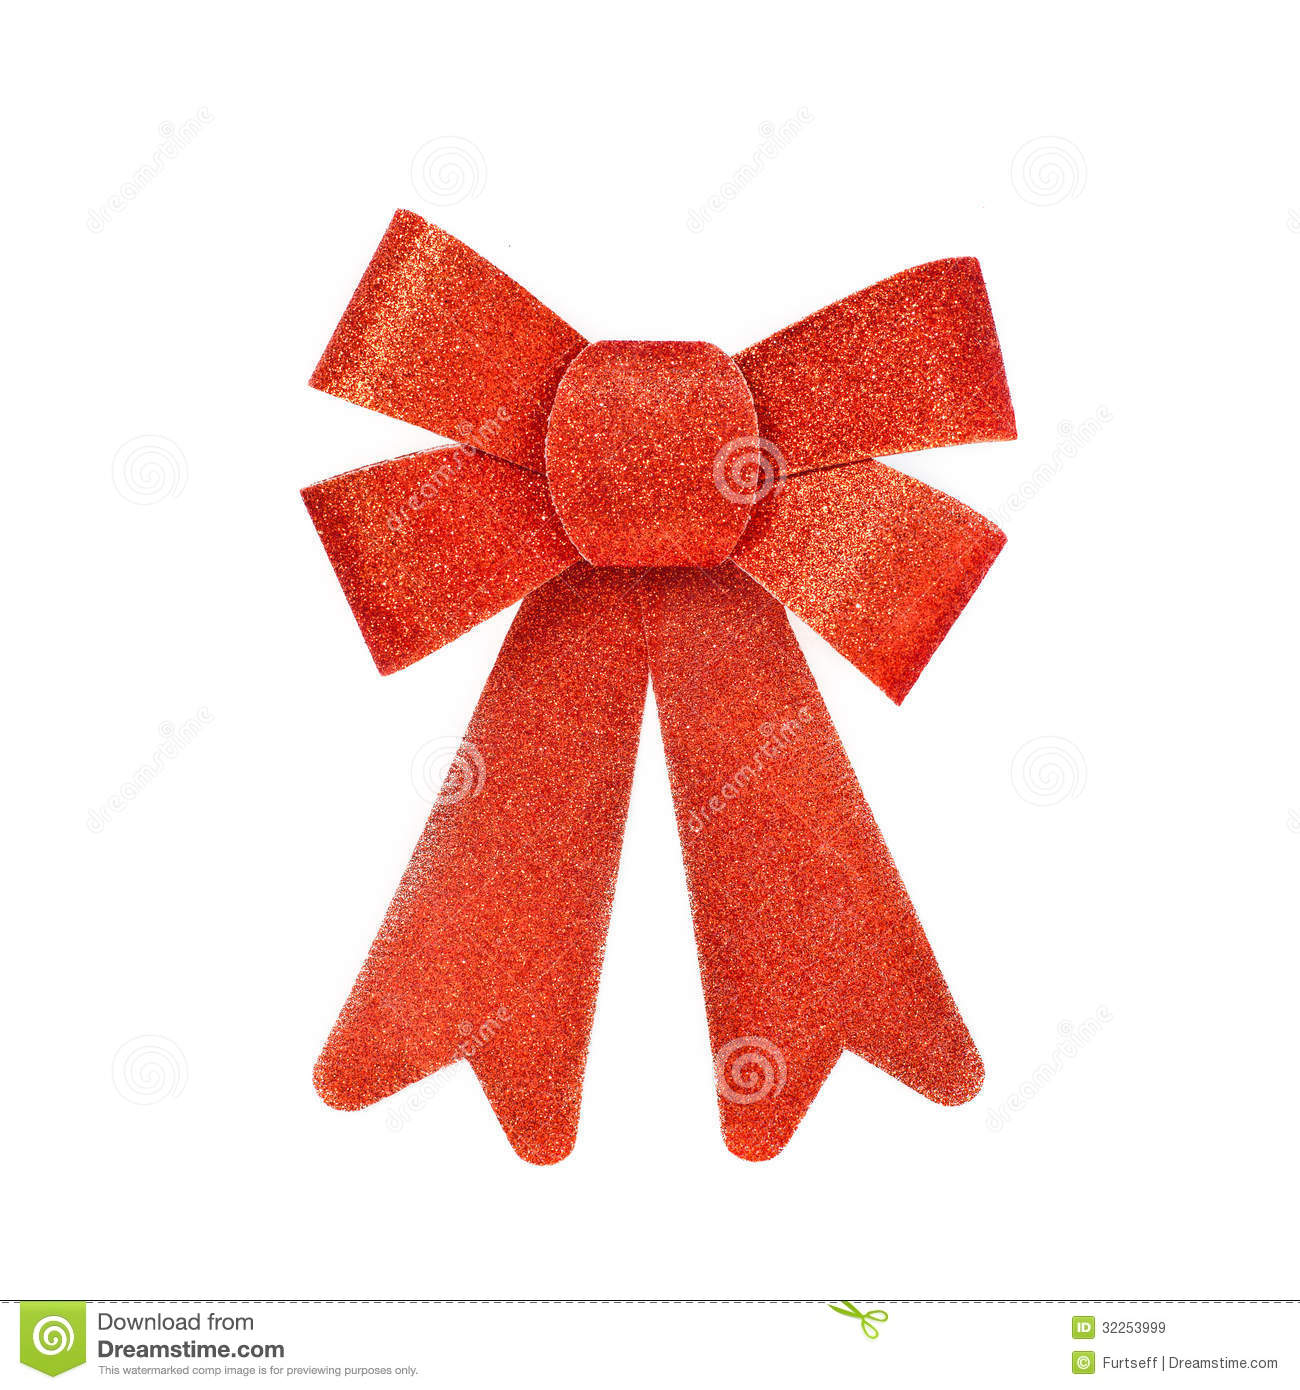 decorative bow of red shiny cardboard royalty free stock images image 32253999. Black Bedroom Furniture Sets. Home Design Ideas